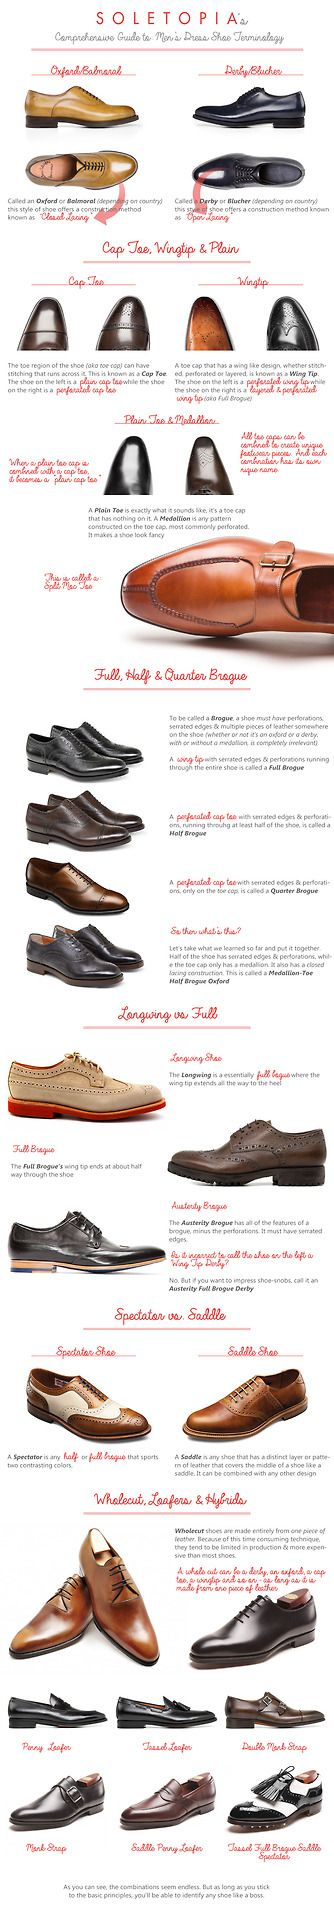 .Shoe Guide  #Style #Fashion #Menswear Re-pinned by www.avacationrental4me.com